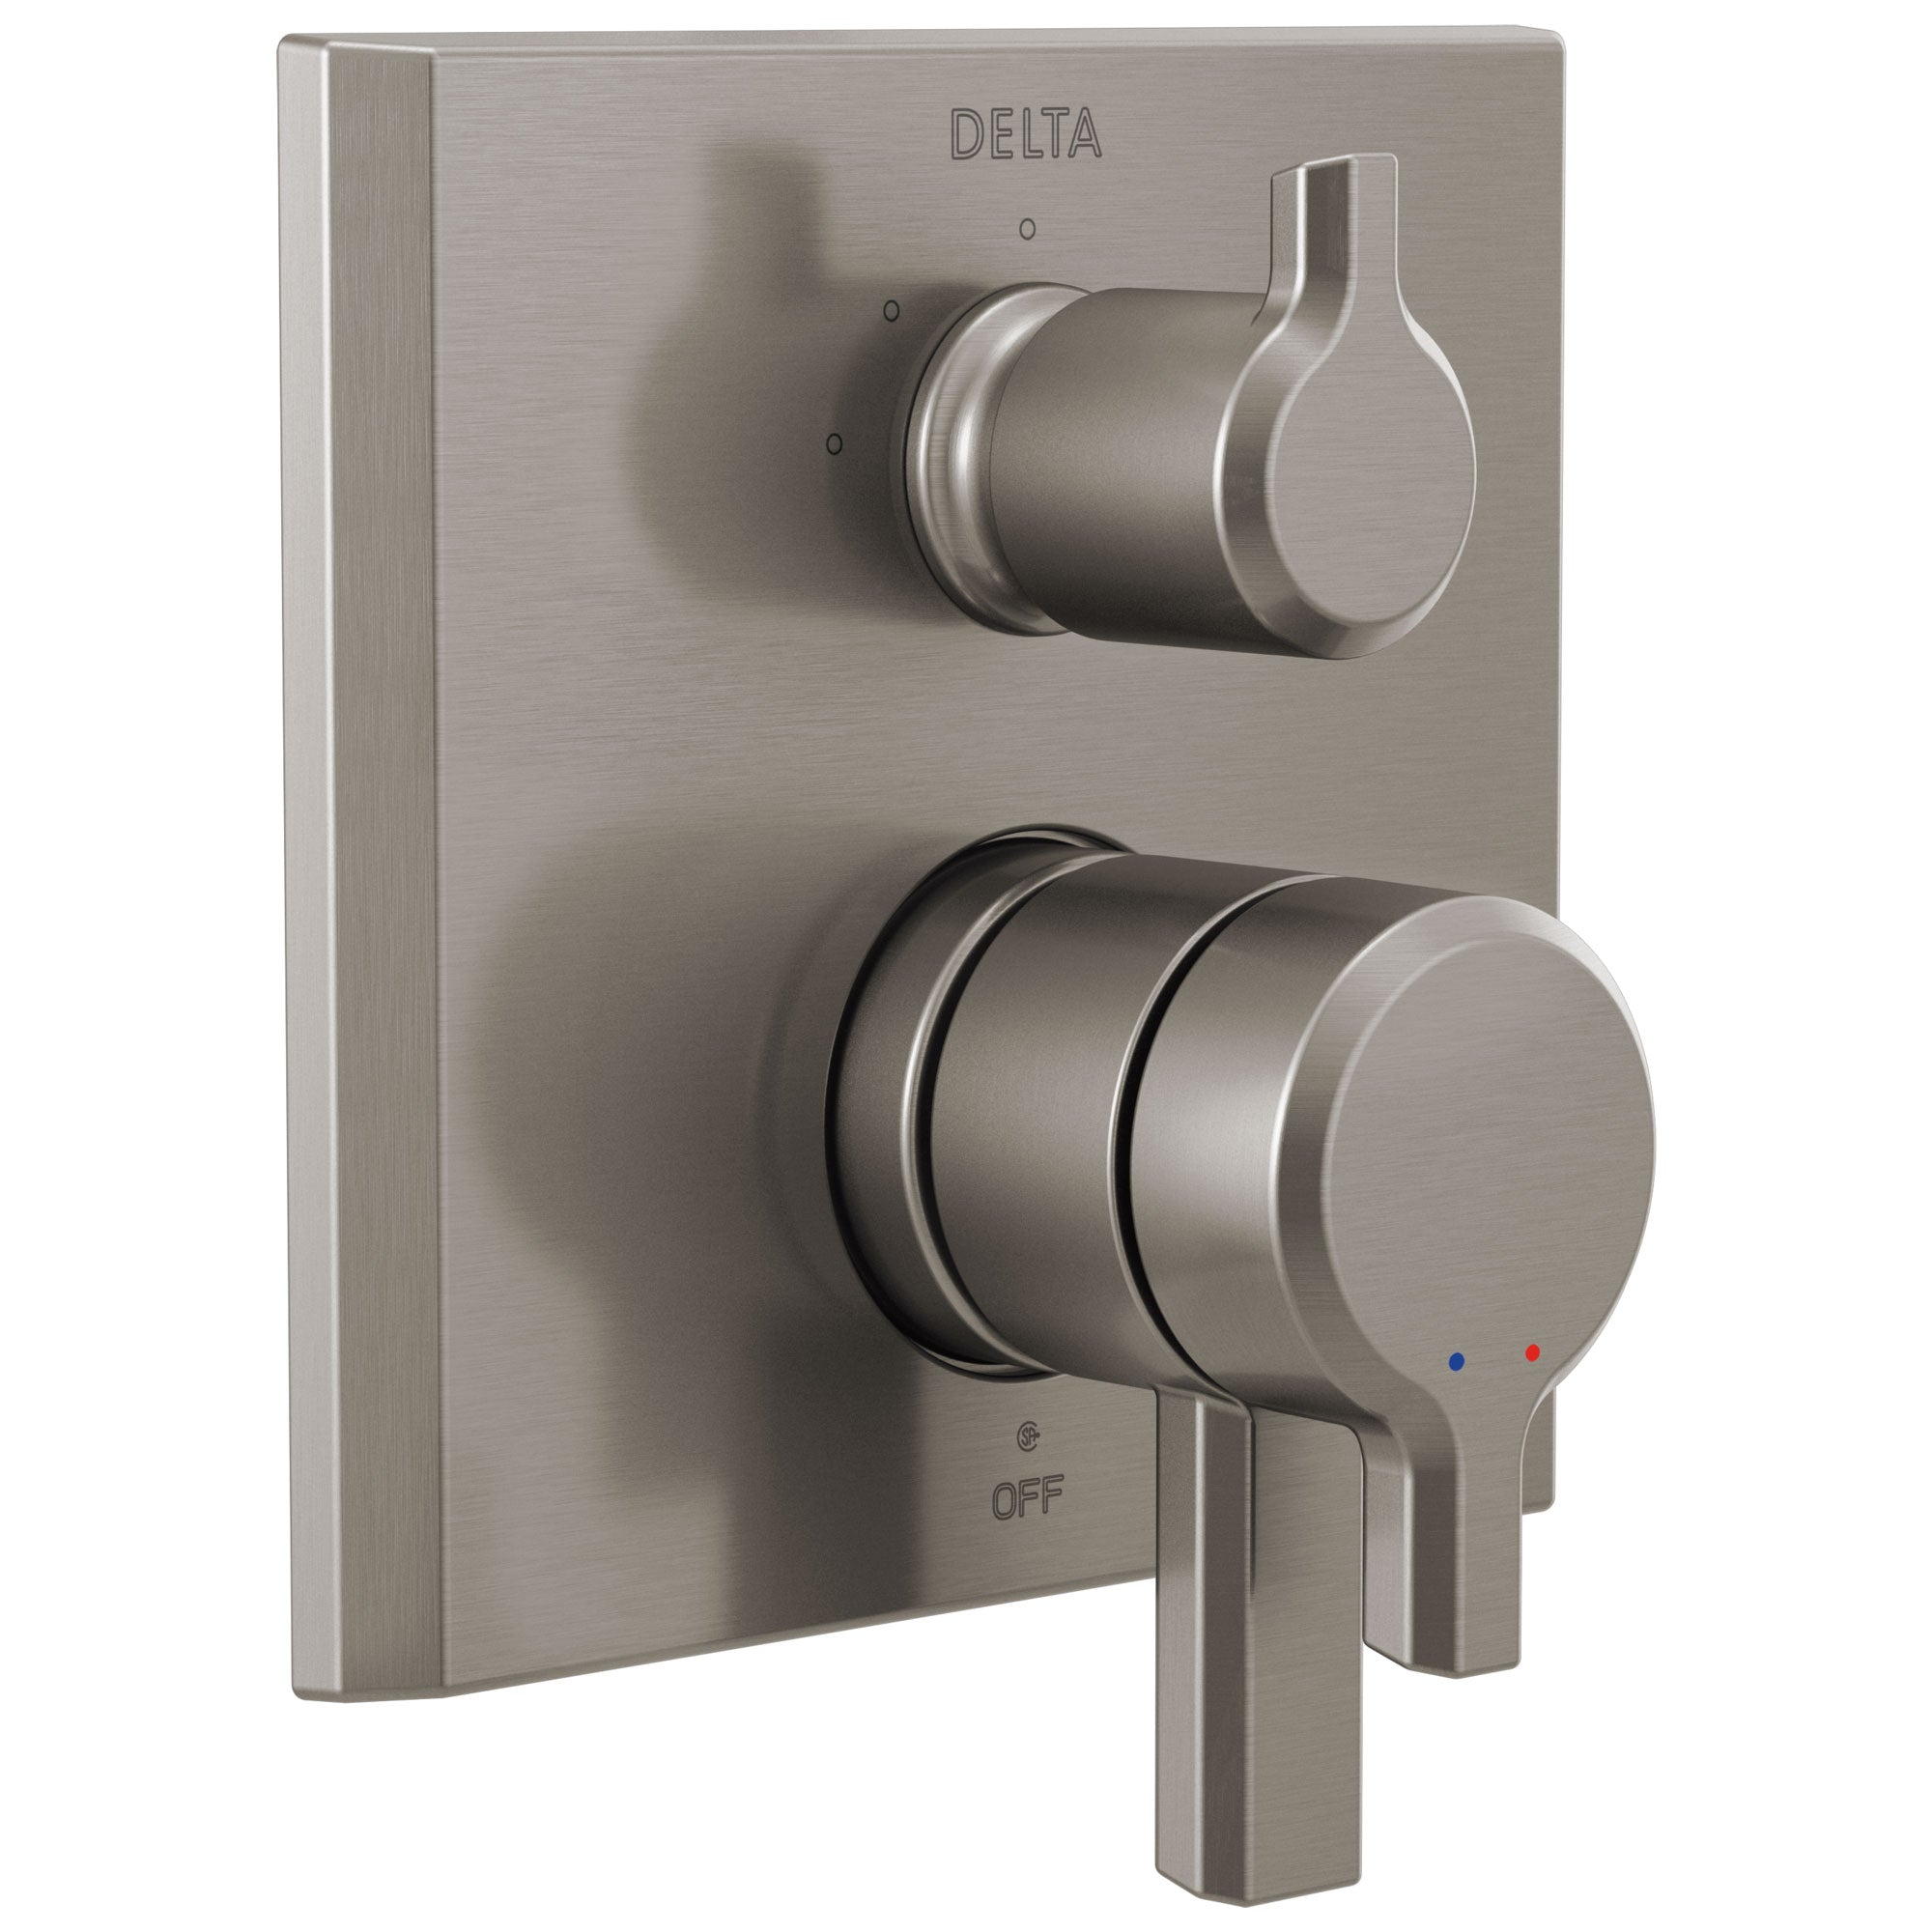 Delta Pivotal Stainless Steel Finish 17 Series Shower Control Trim Kit with 3-Function Integrated Diverter (Requires Valve) DT27899SS